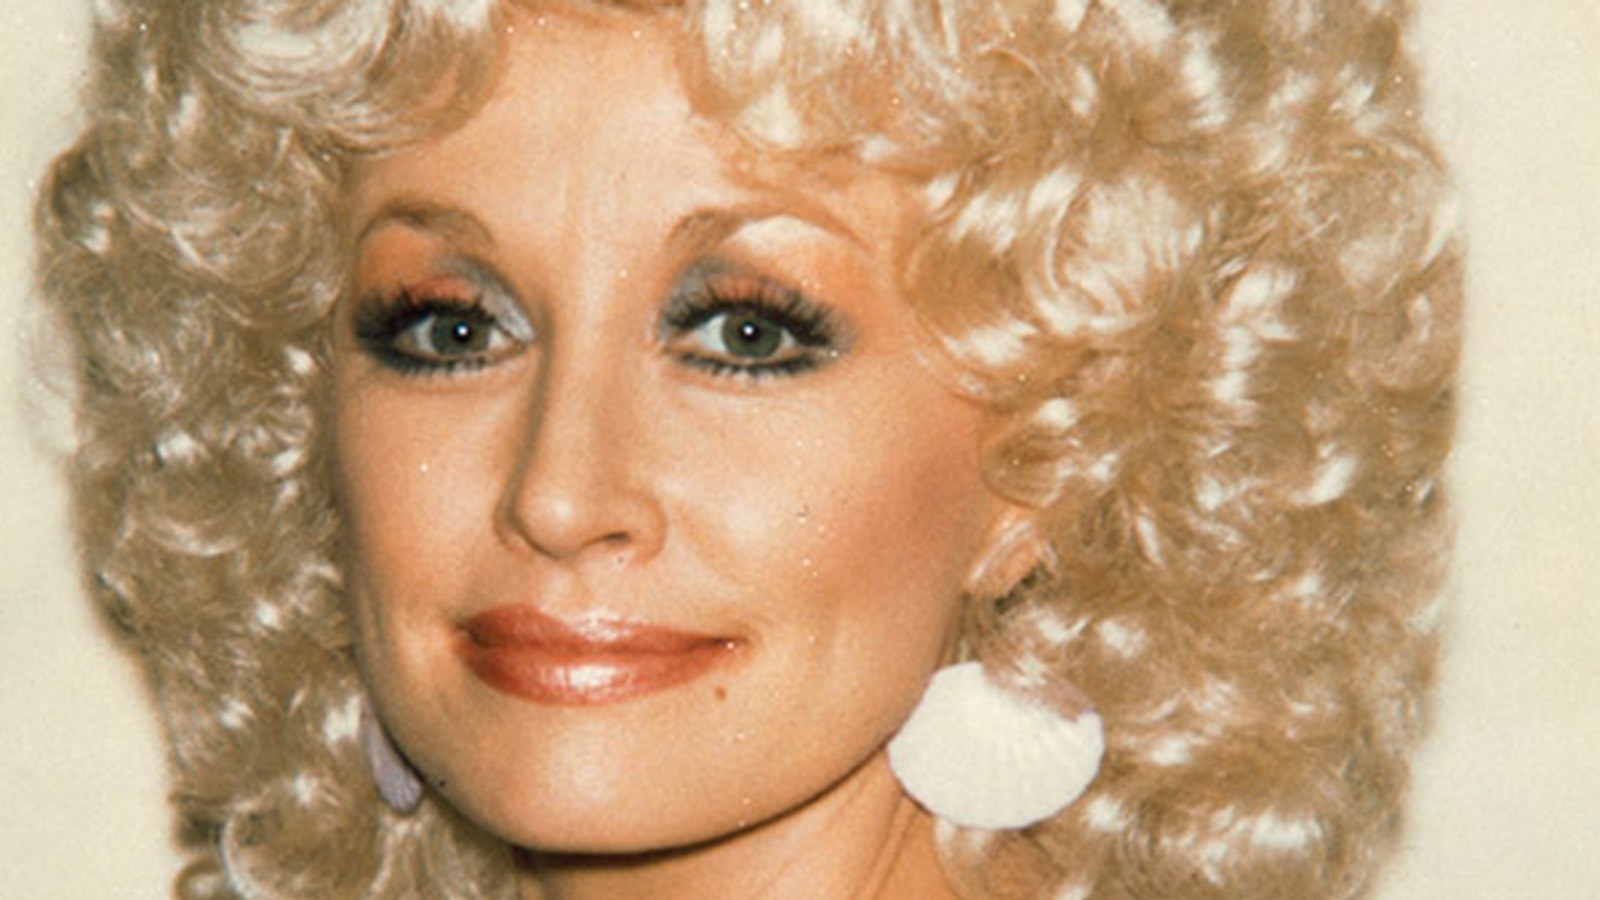 Dolly Parton: Dolly Parton Fast Facts